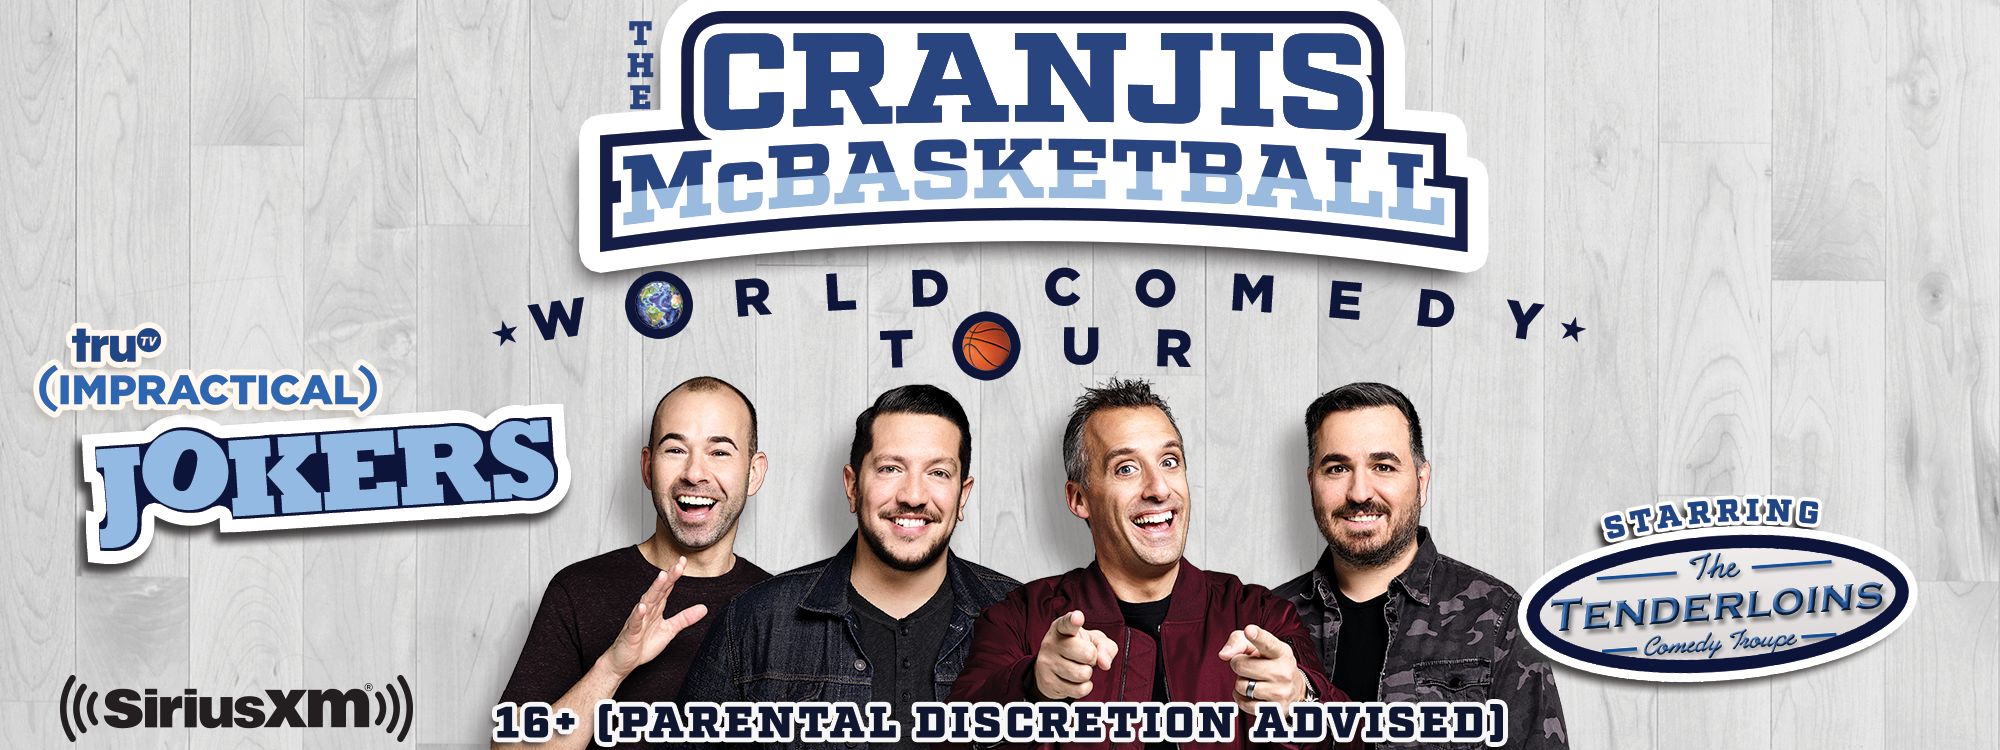 "Universal Hollywood Presents Impractical Jokers ""The Cranjis McBasketball World Comedy Tour"""